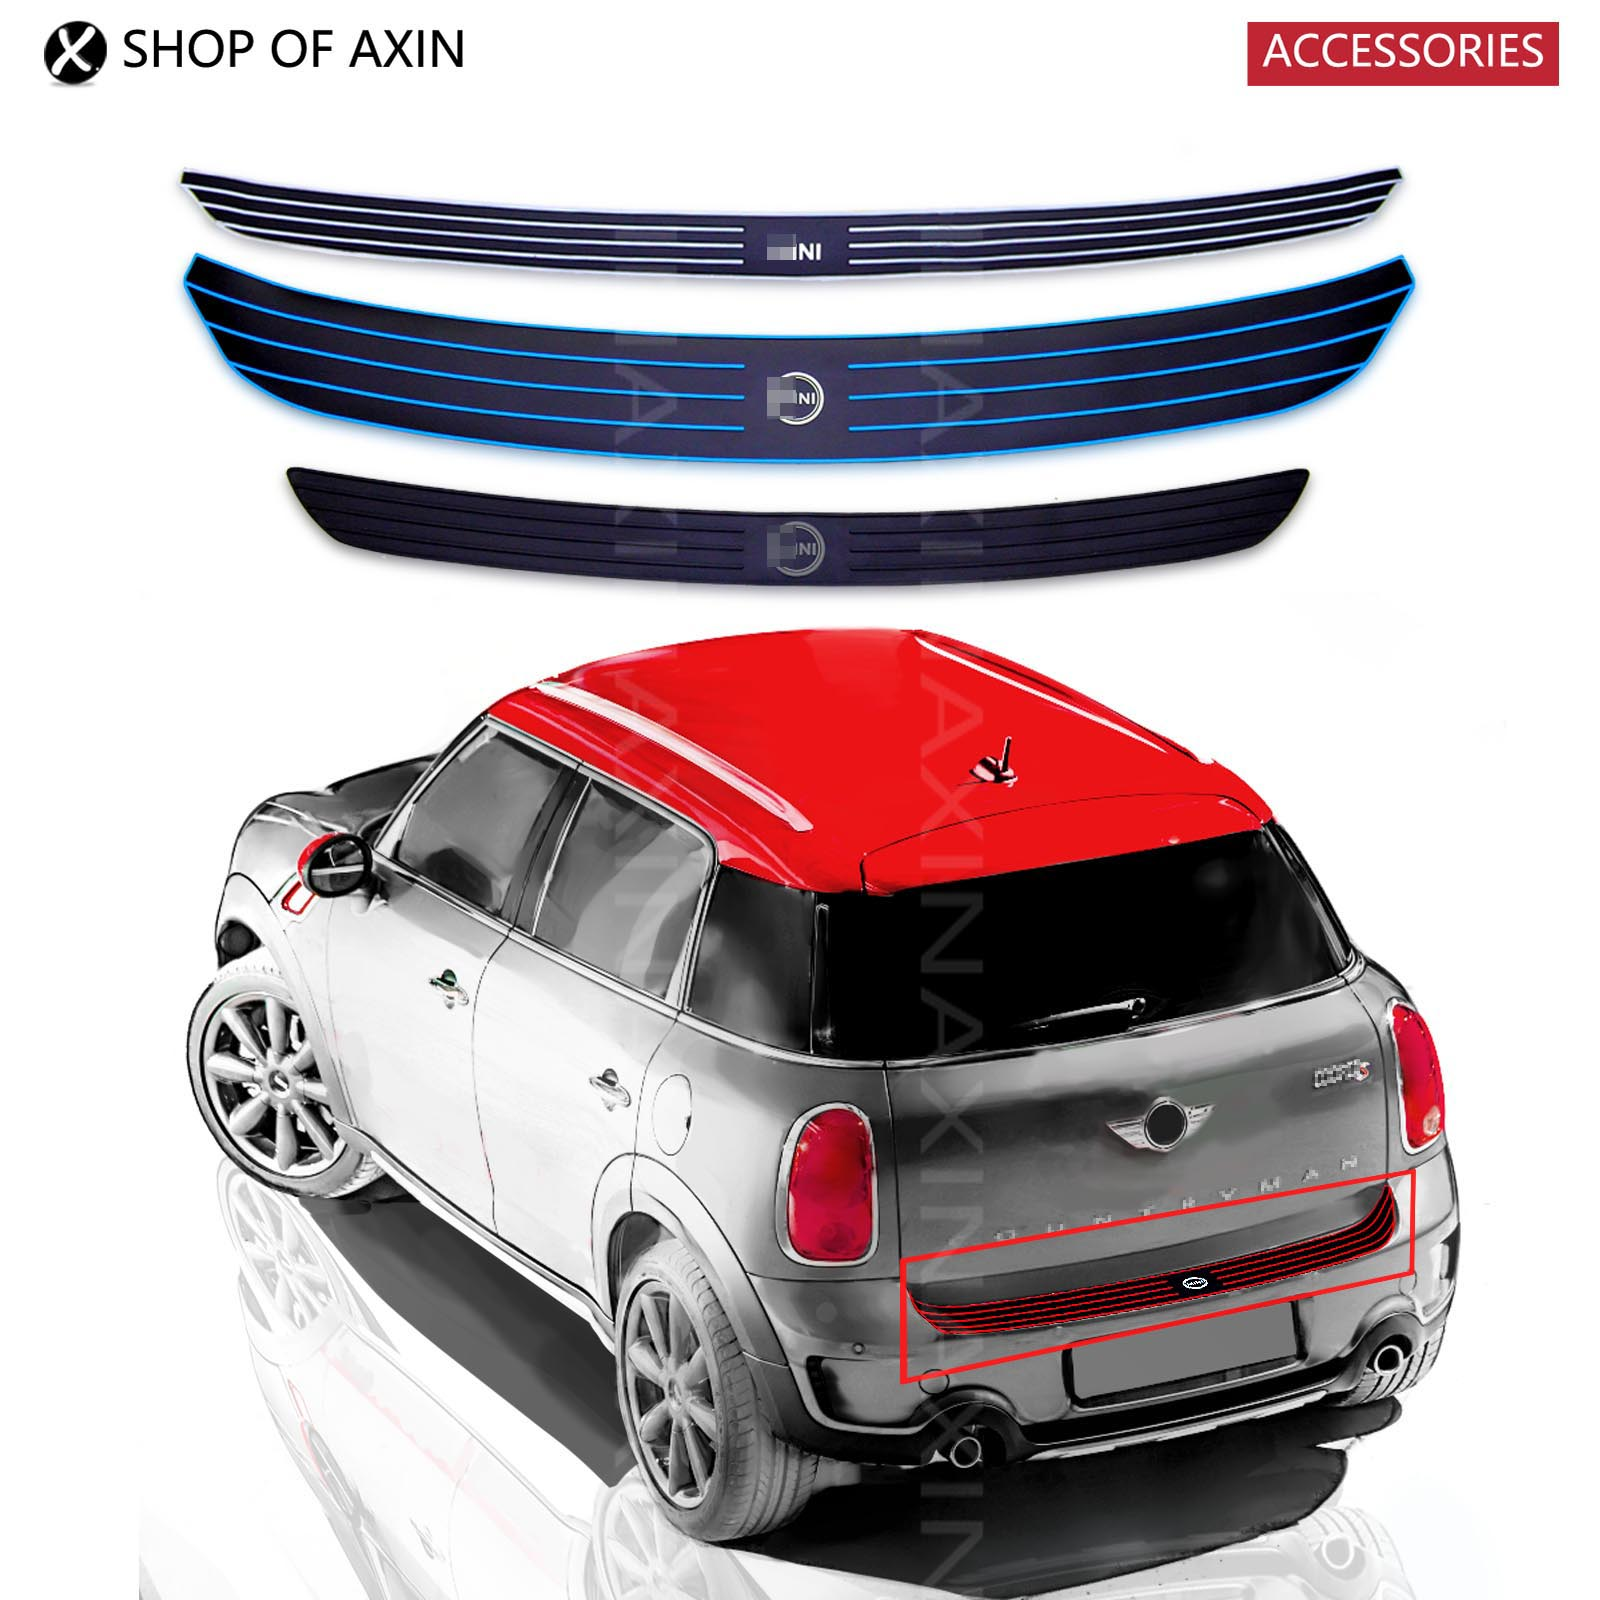 Car rear bumper Trunk load edge Protector guard Rubber Trim sticker for MINI cooper clubman countryman R55 R56 R57 R60 F55 F56 protective pvc car bumper guard protector sticker white 2 pcs